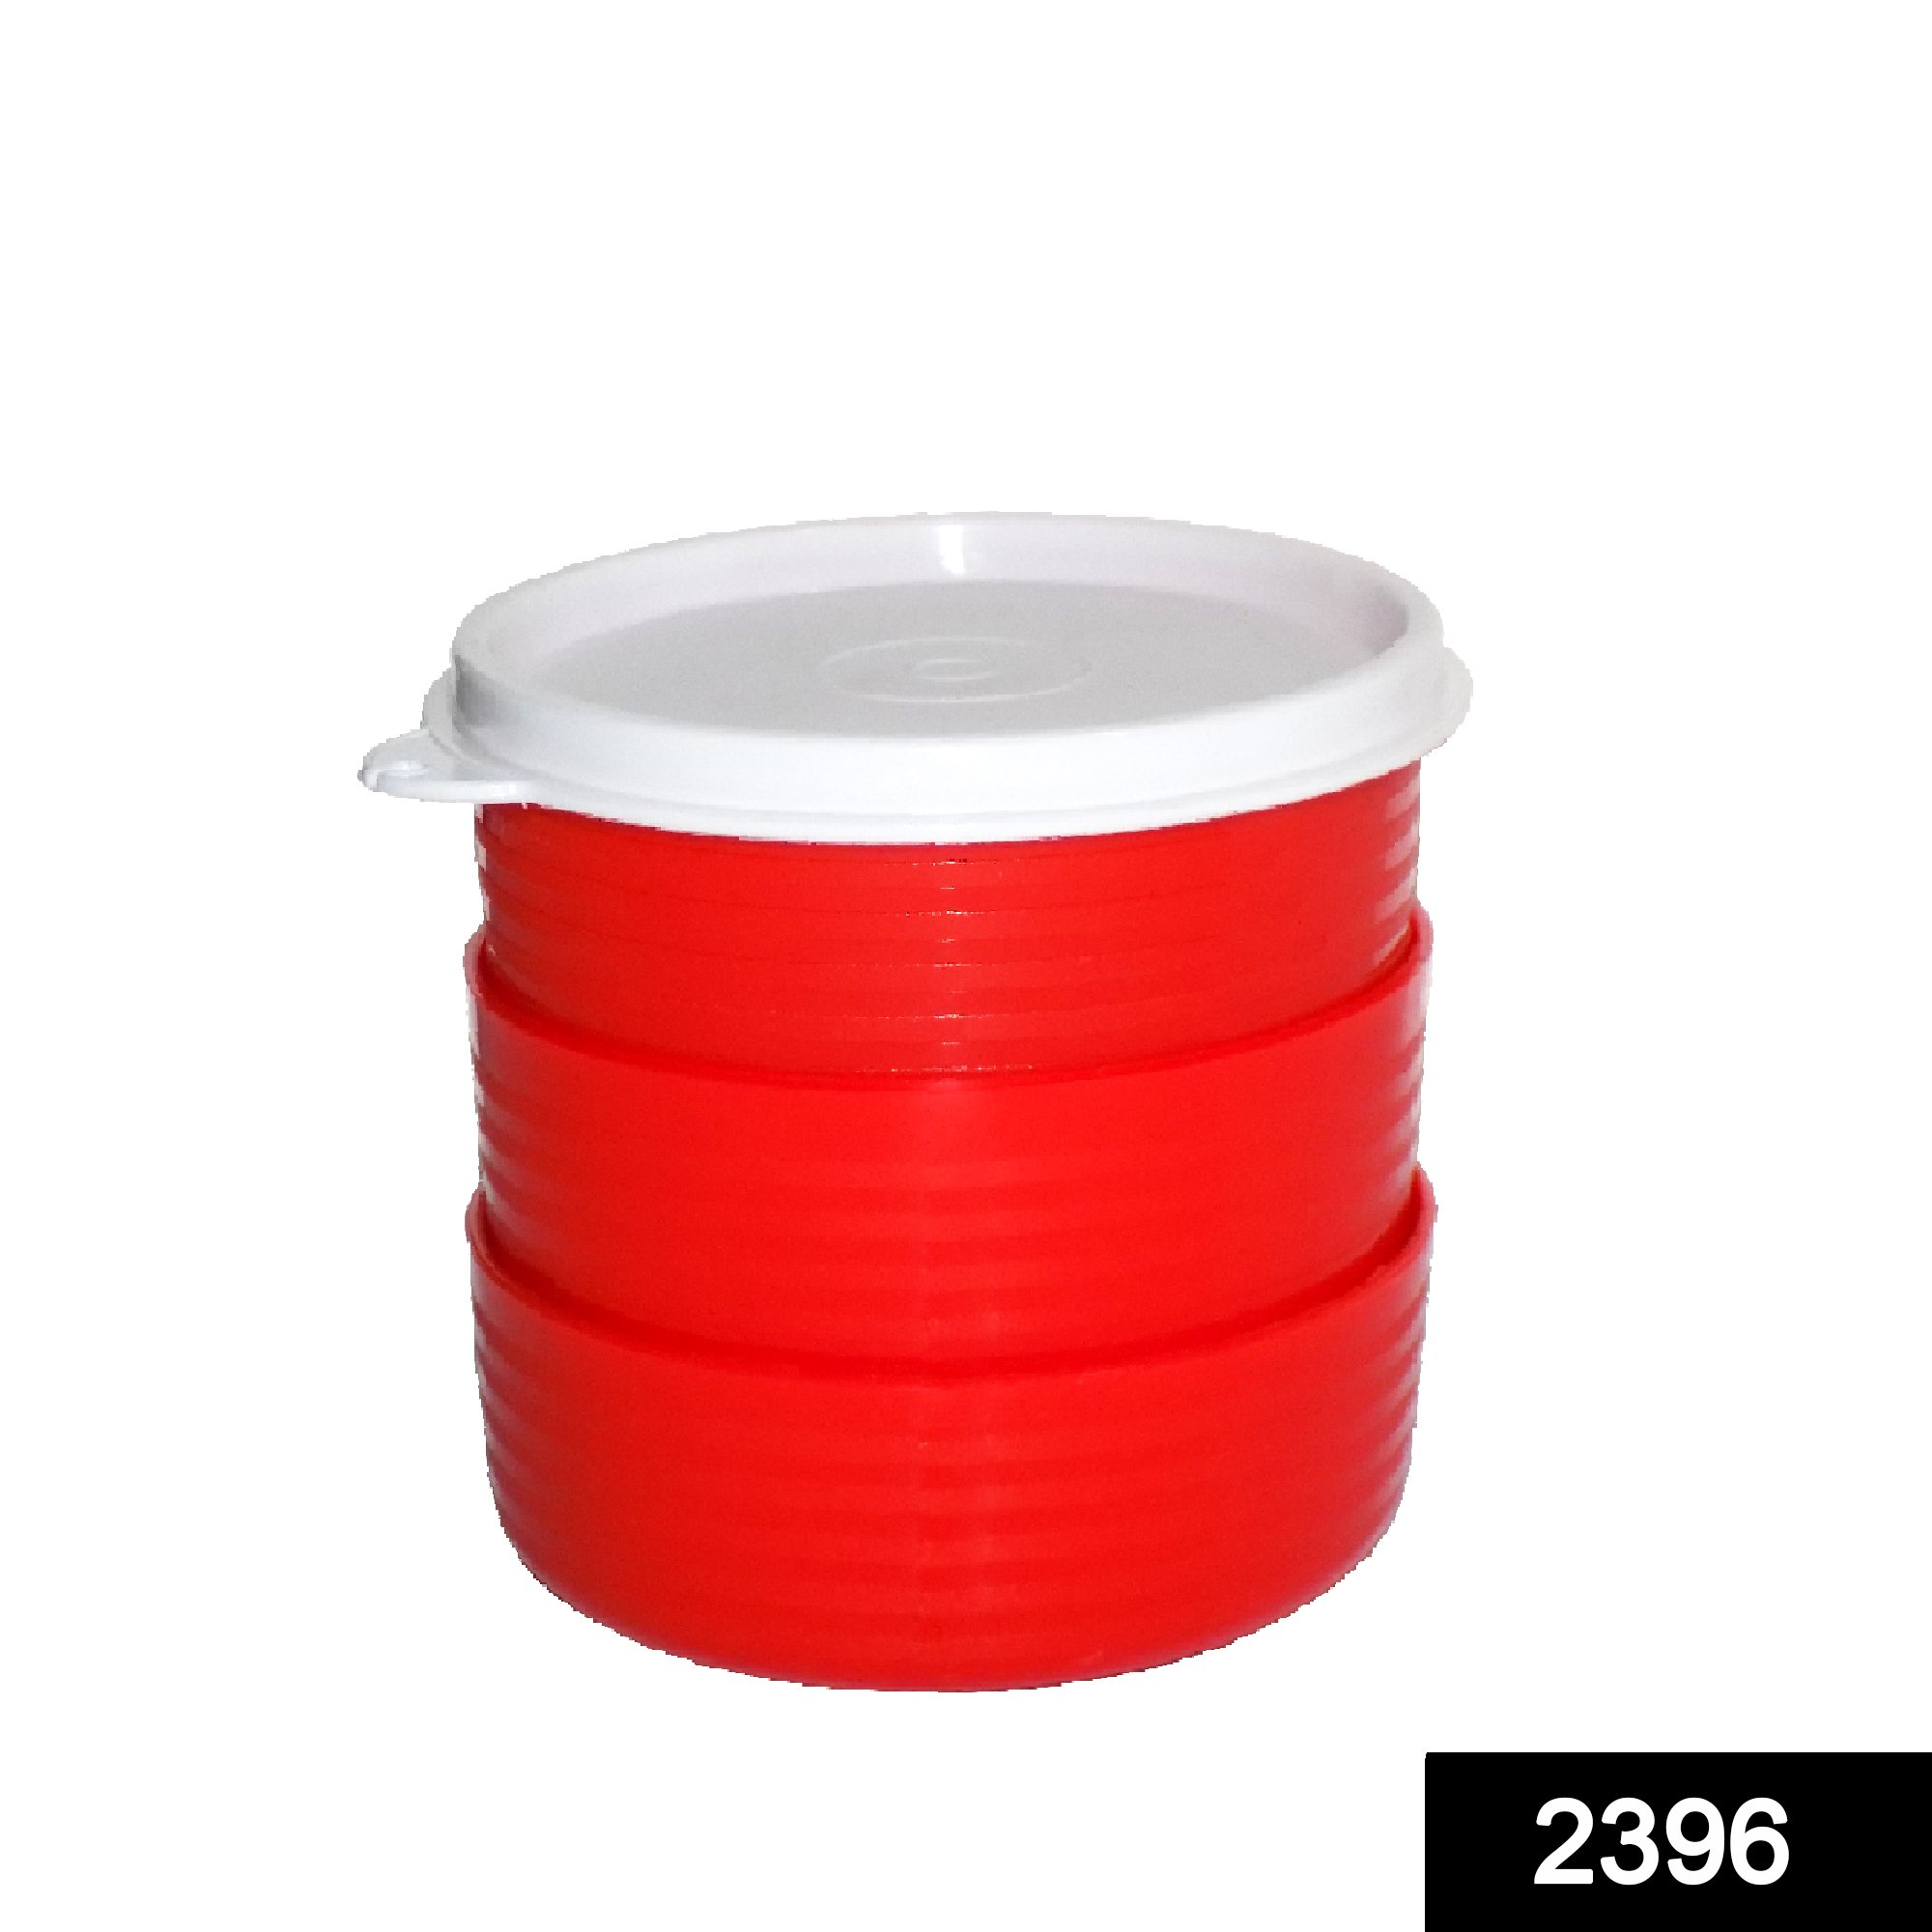 2396 Classics Food Container with Leak Proof Lid (Pack of 3) -